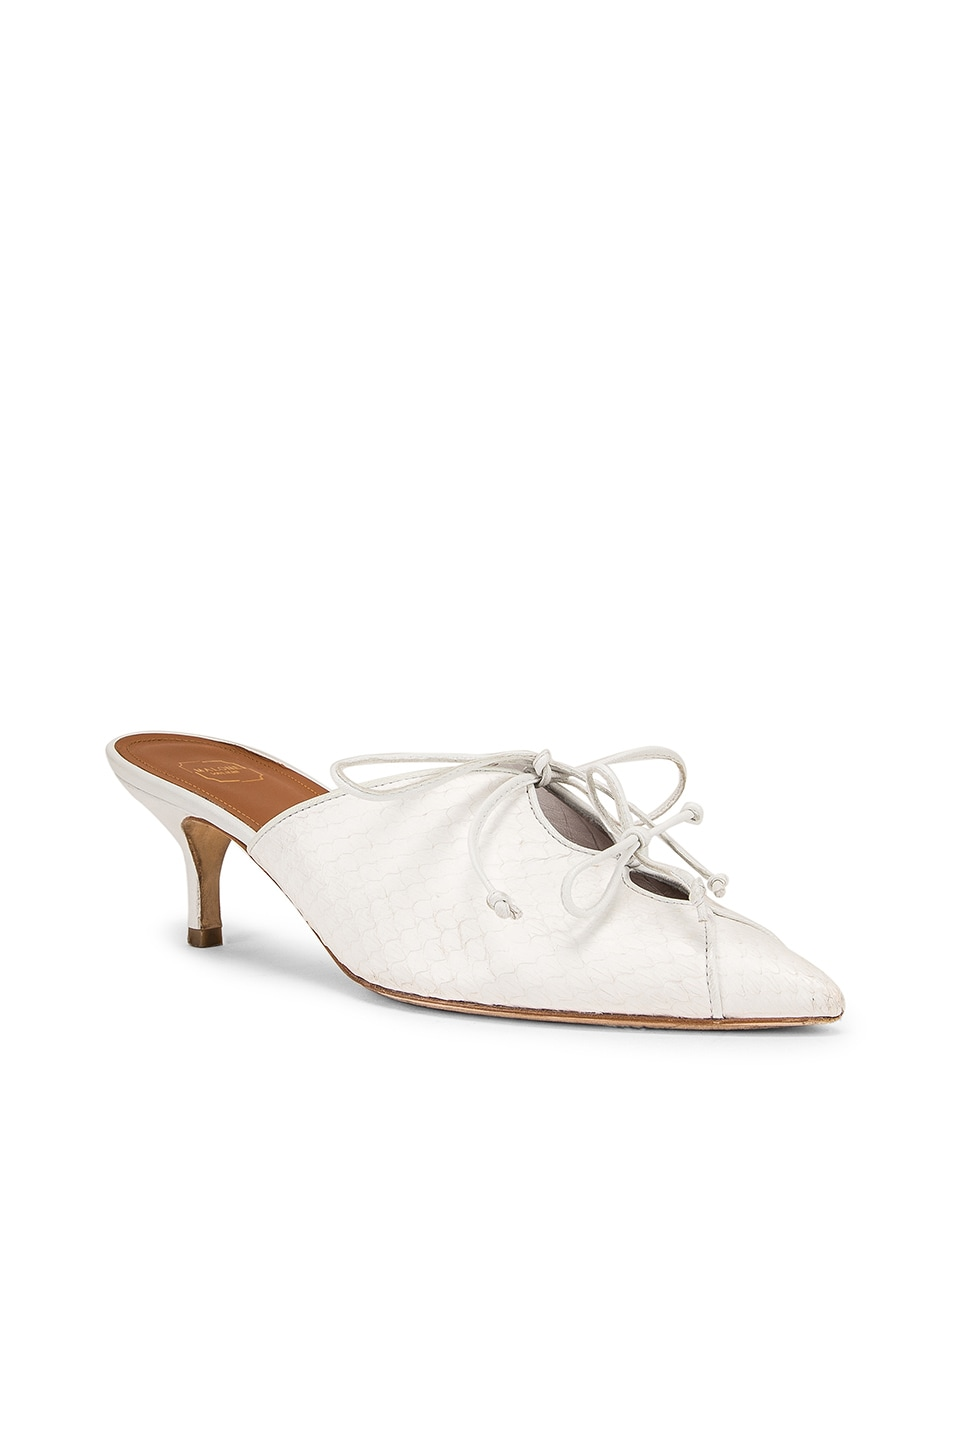 Image 2 of Malone Souliers Victoria MS 45 Heel in White